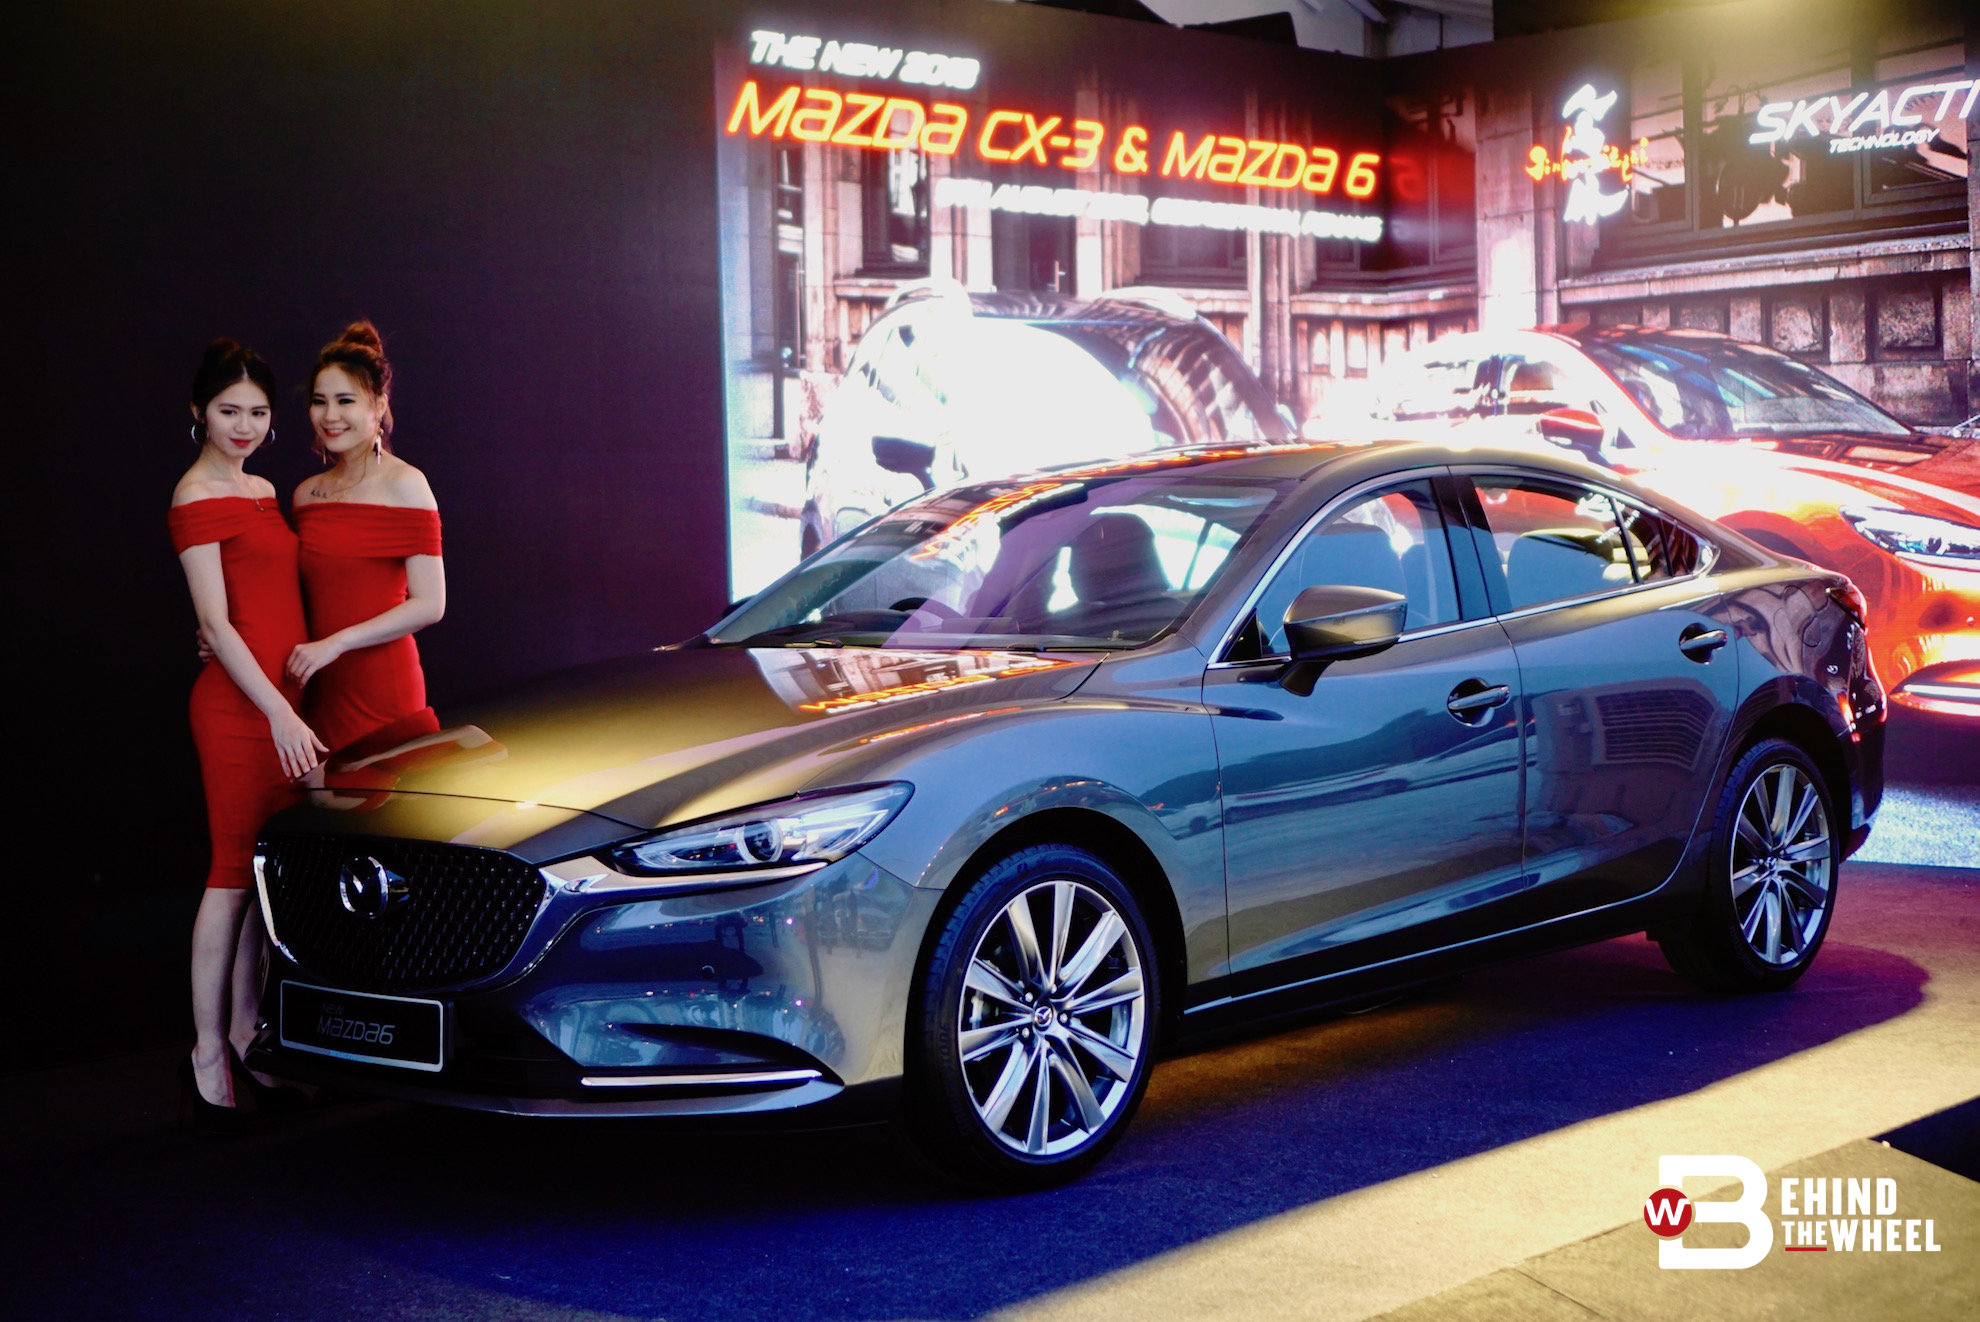 updated with price more features for the 2018 mazda6 with a new ish face and tail too